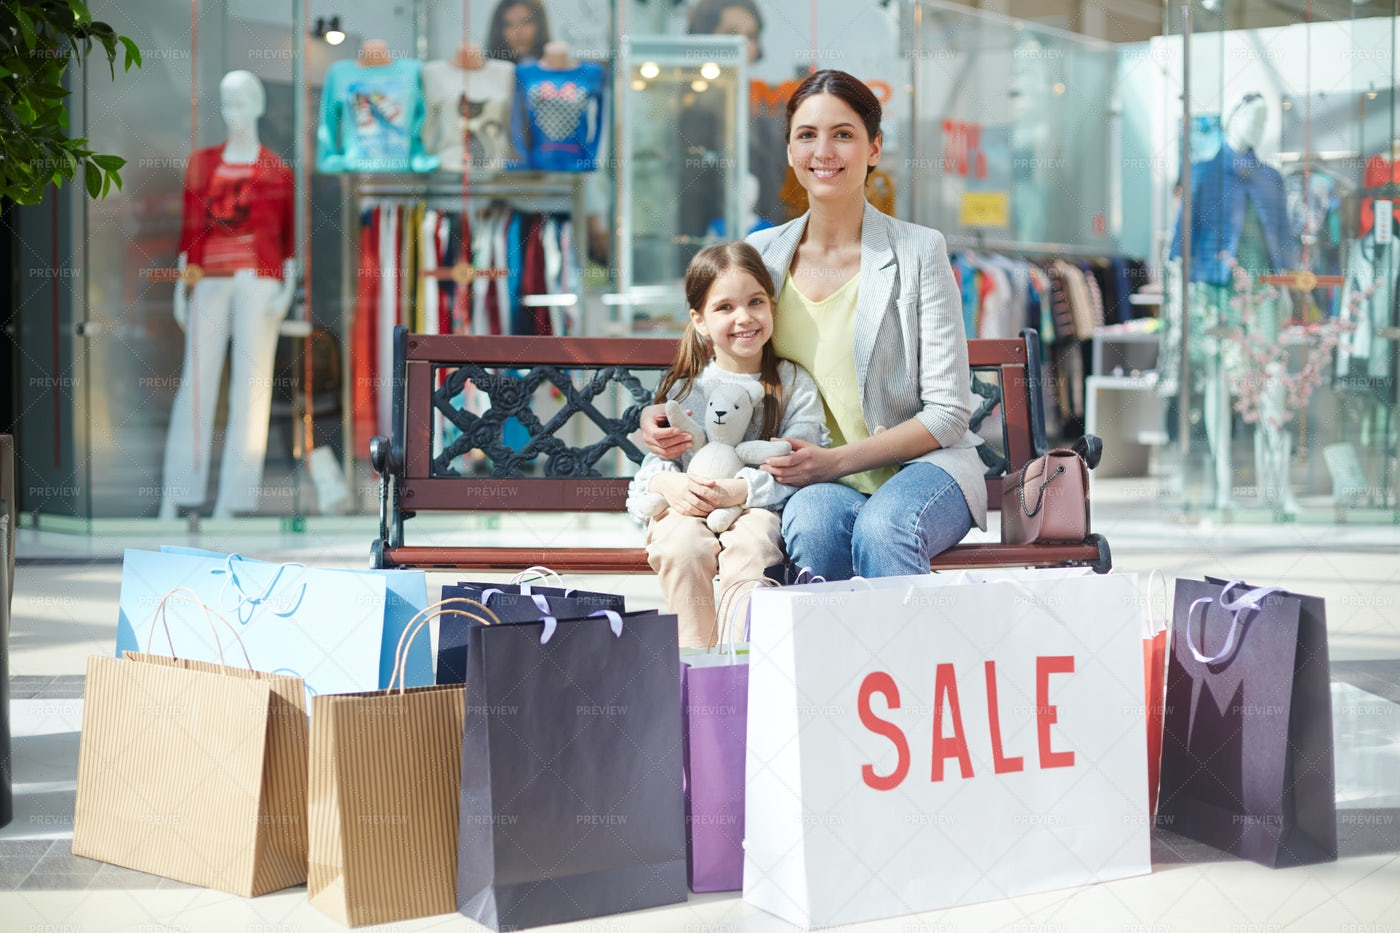 Happy With Shopping: Stock Photos